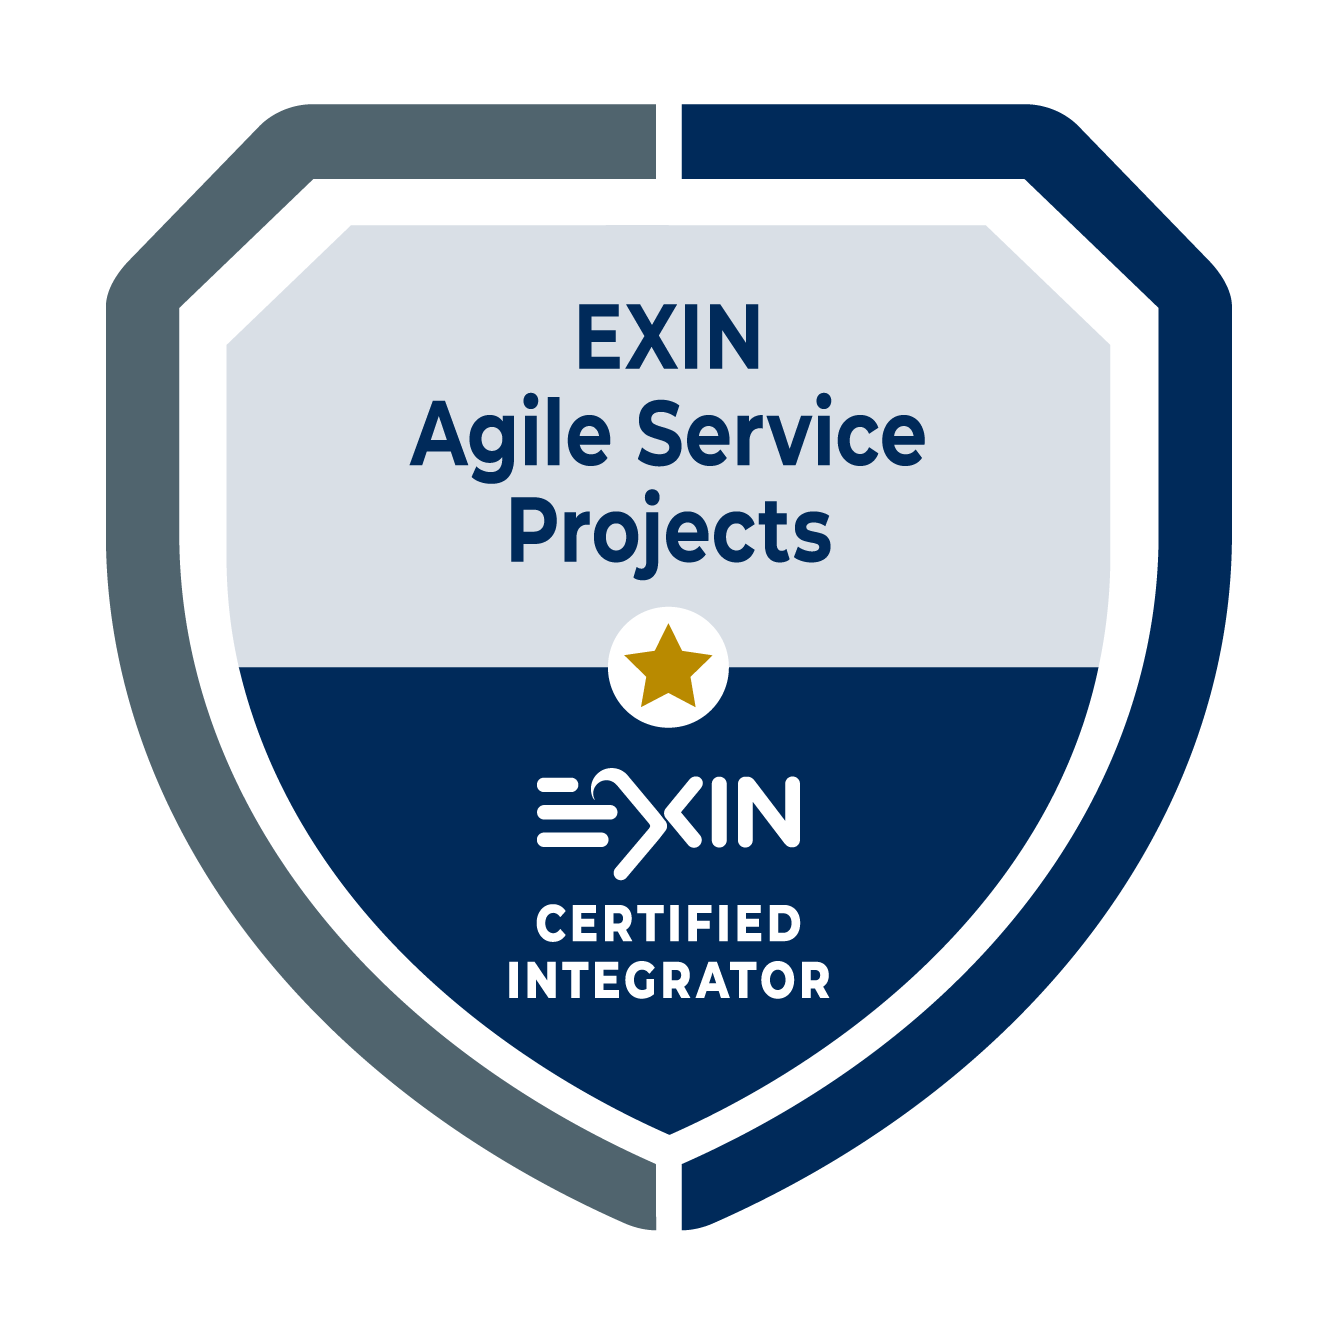 Digital Badge EXIN Agile Service Projects